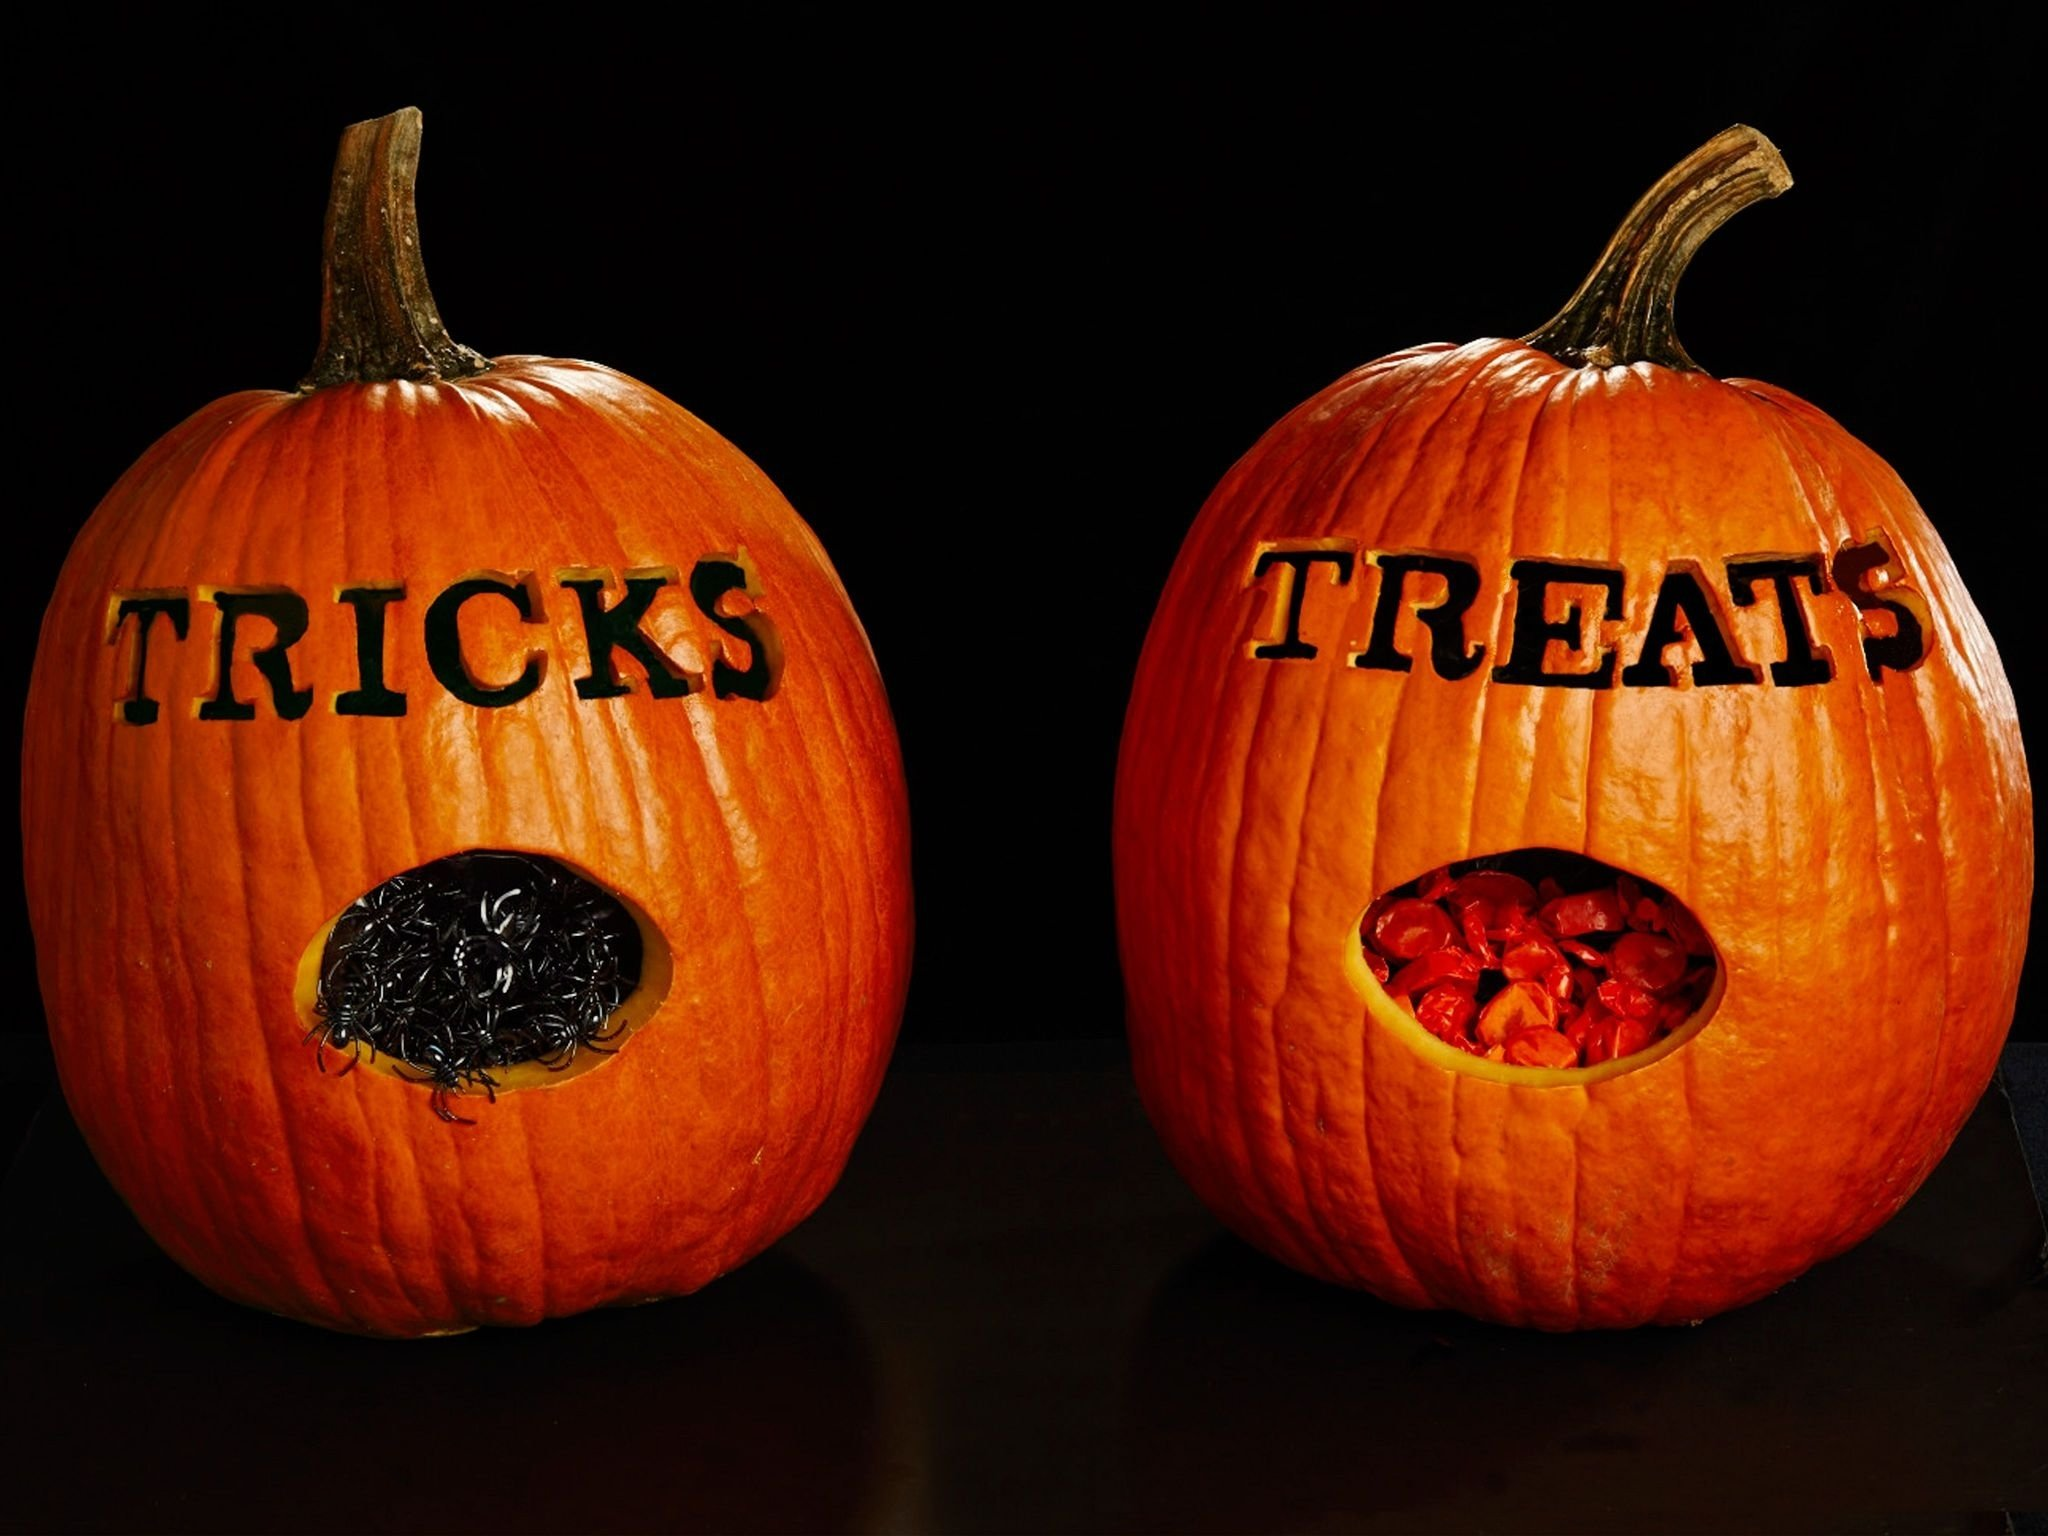 10 Lovable Cool And Easy Pumpkin Carving Ideas the best simple easy pumpkin carving ideas on cool for halloween 10 2020